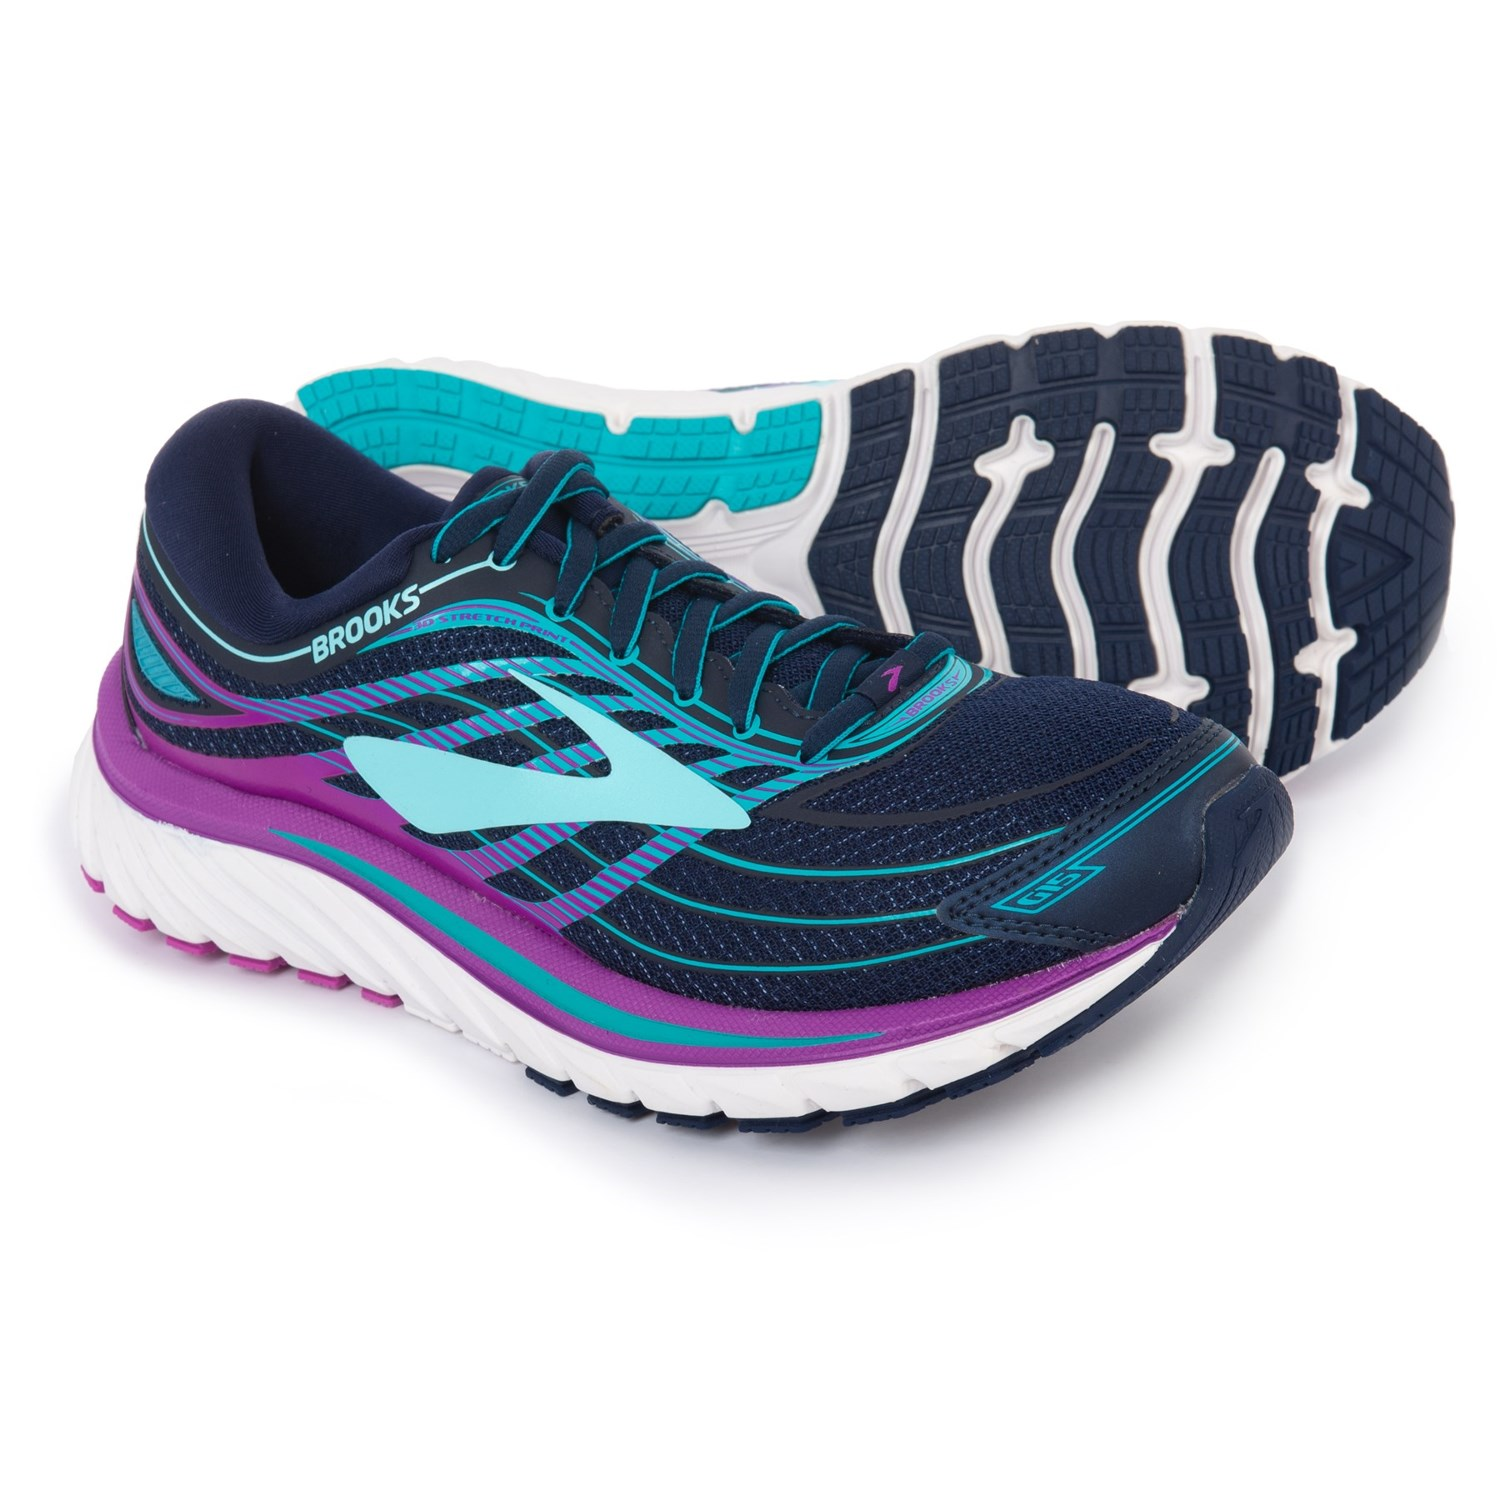 46689c9782e Brooks Glycerin 15 Running Shoes (For Women) in Evening Blue Purple Cactus  Flower